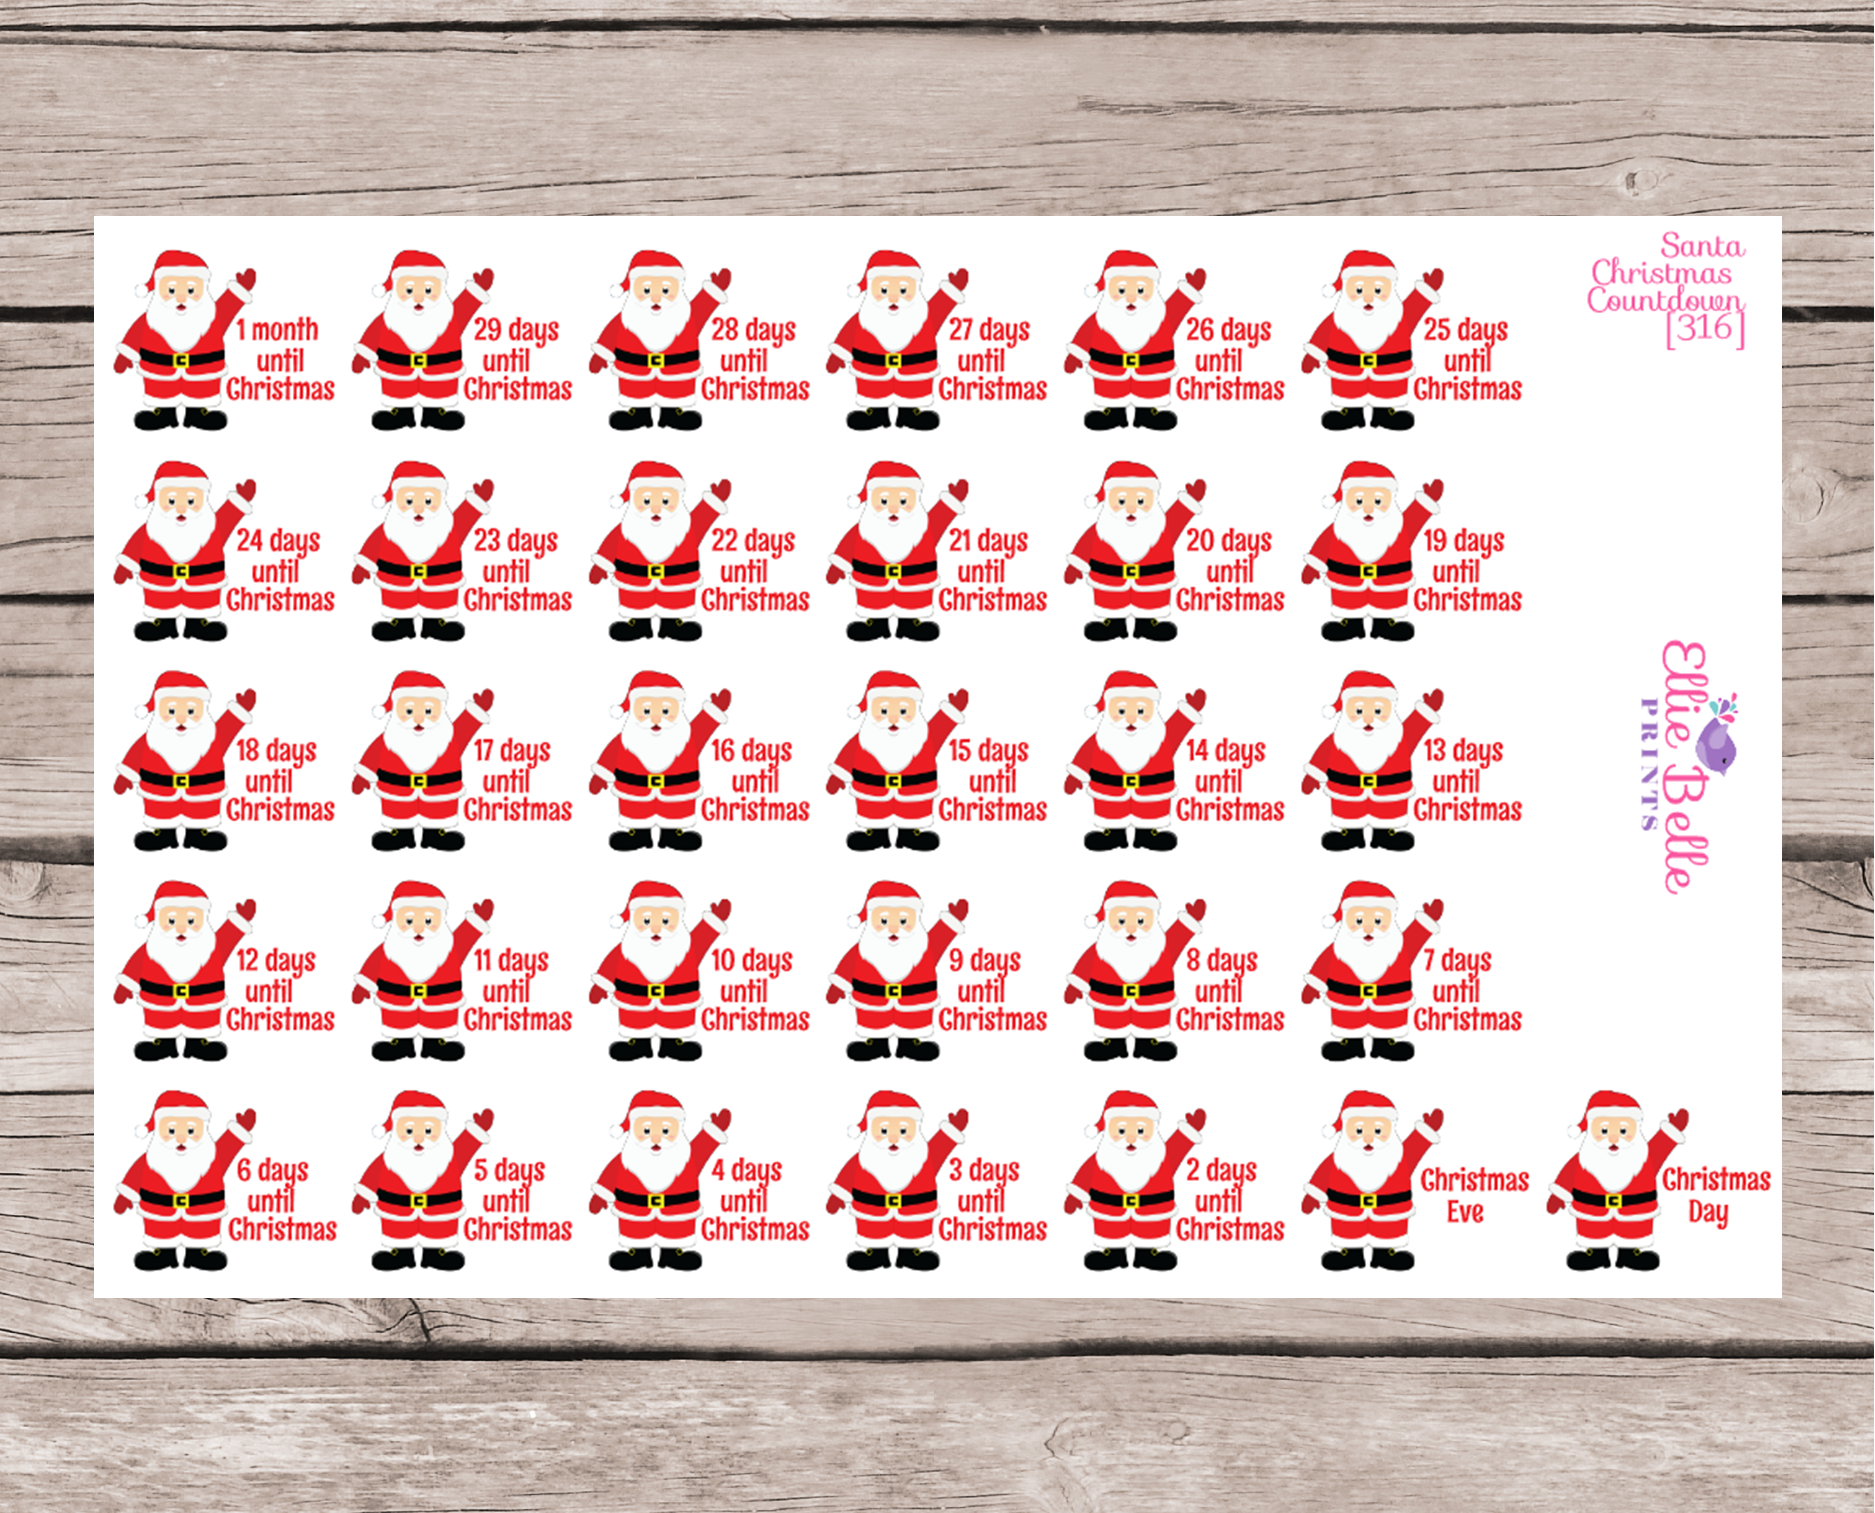 Santa Christmas Countdown Stickers [316]